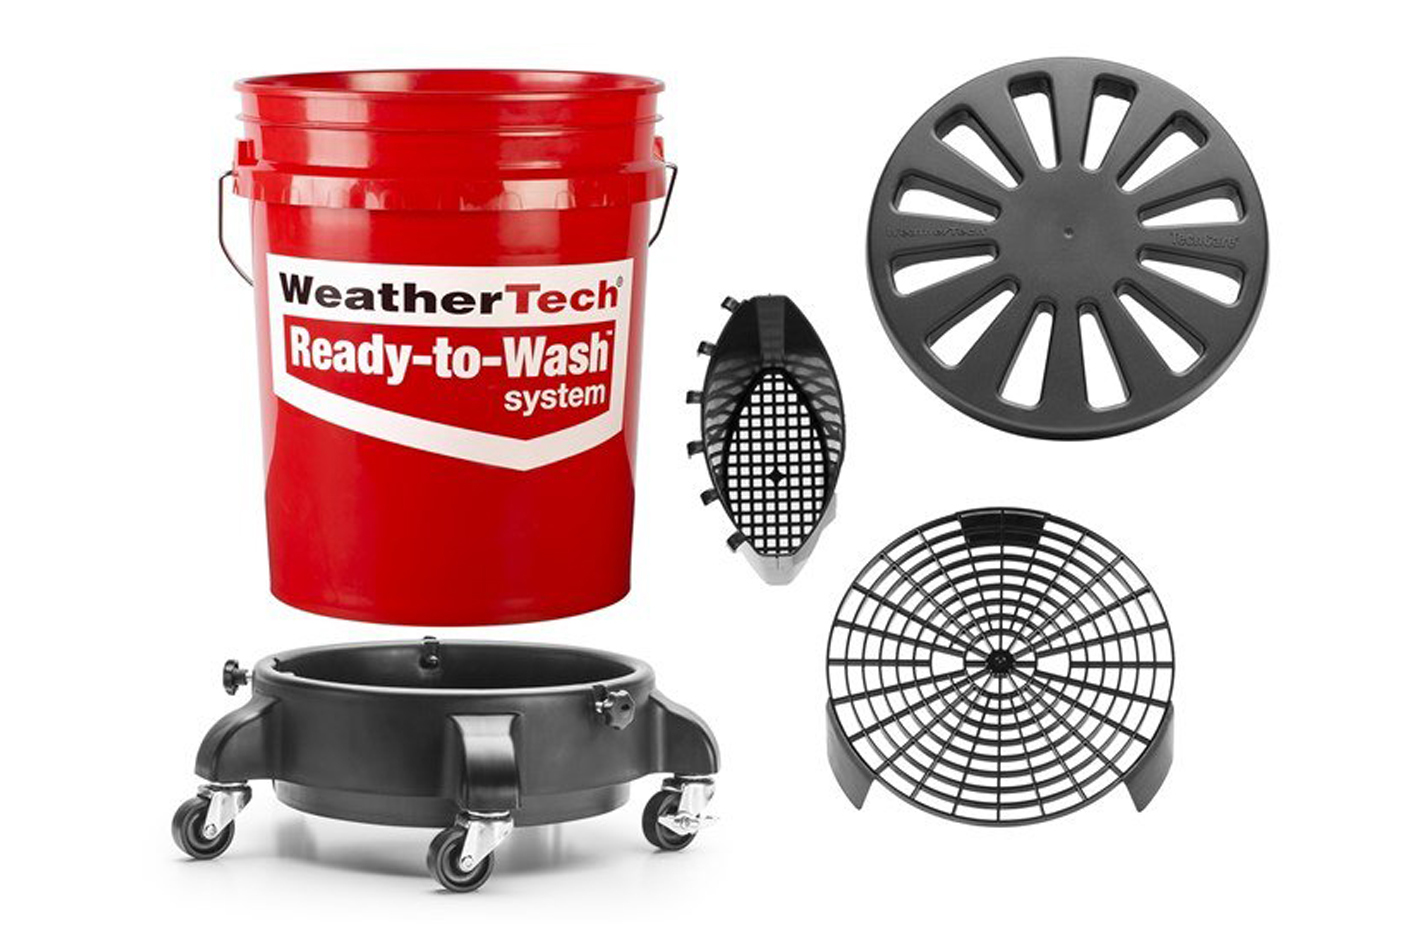 Weathertech TechCare Ready-To-Wash Bucket System